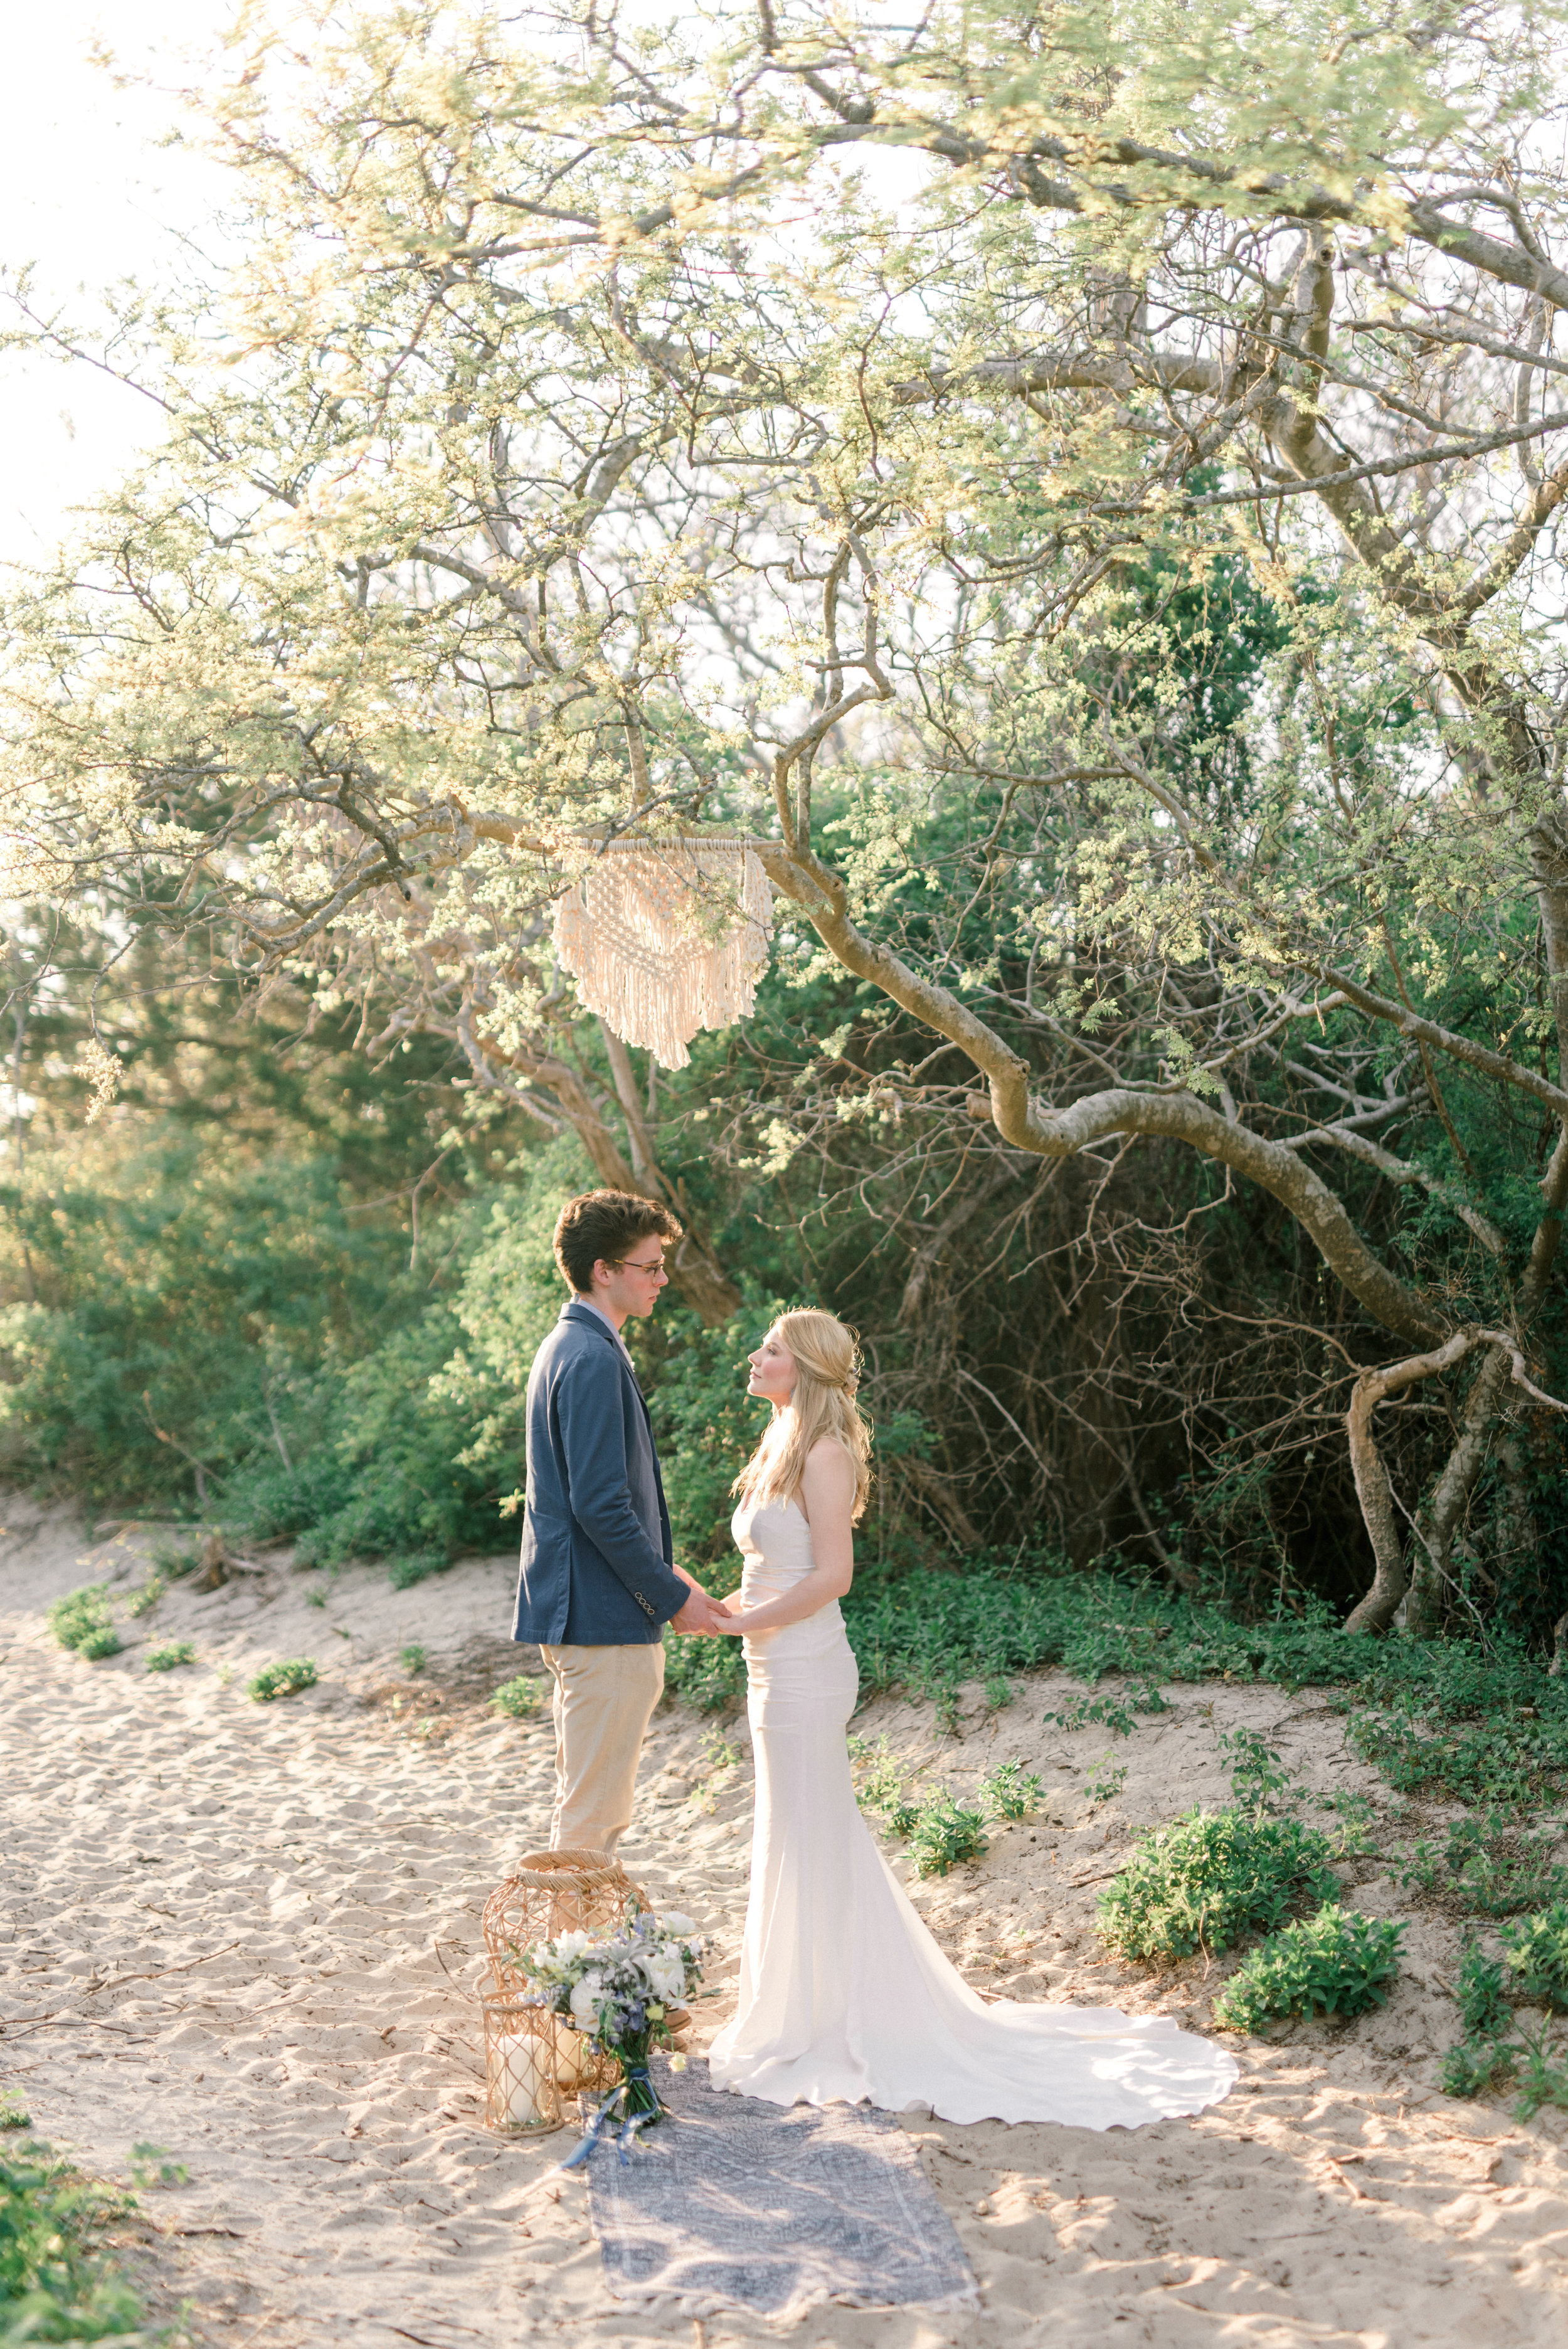 haley-richter-photography-clover-event-co-cape-may-new-jersey-wedding-elopement-at-congress-hall-sea-glass-inspired-060.jpg